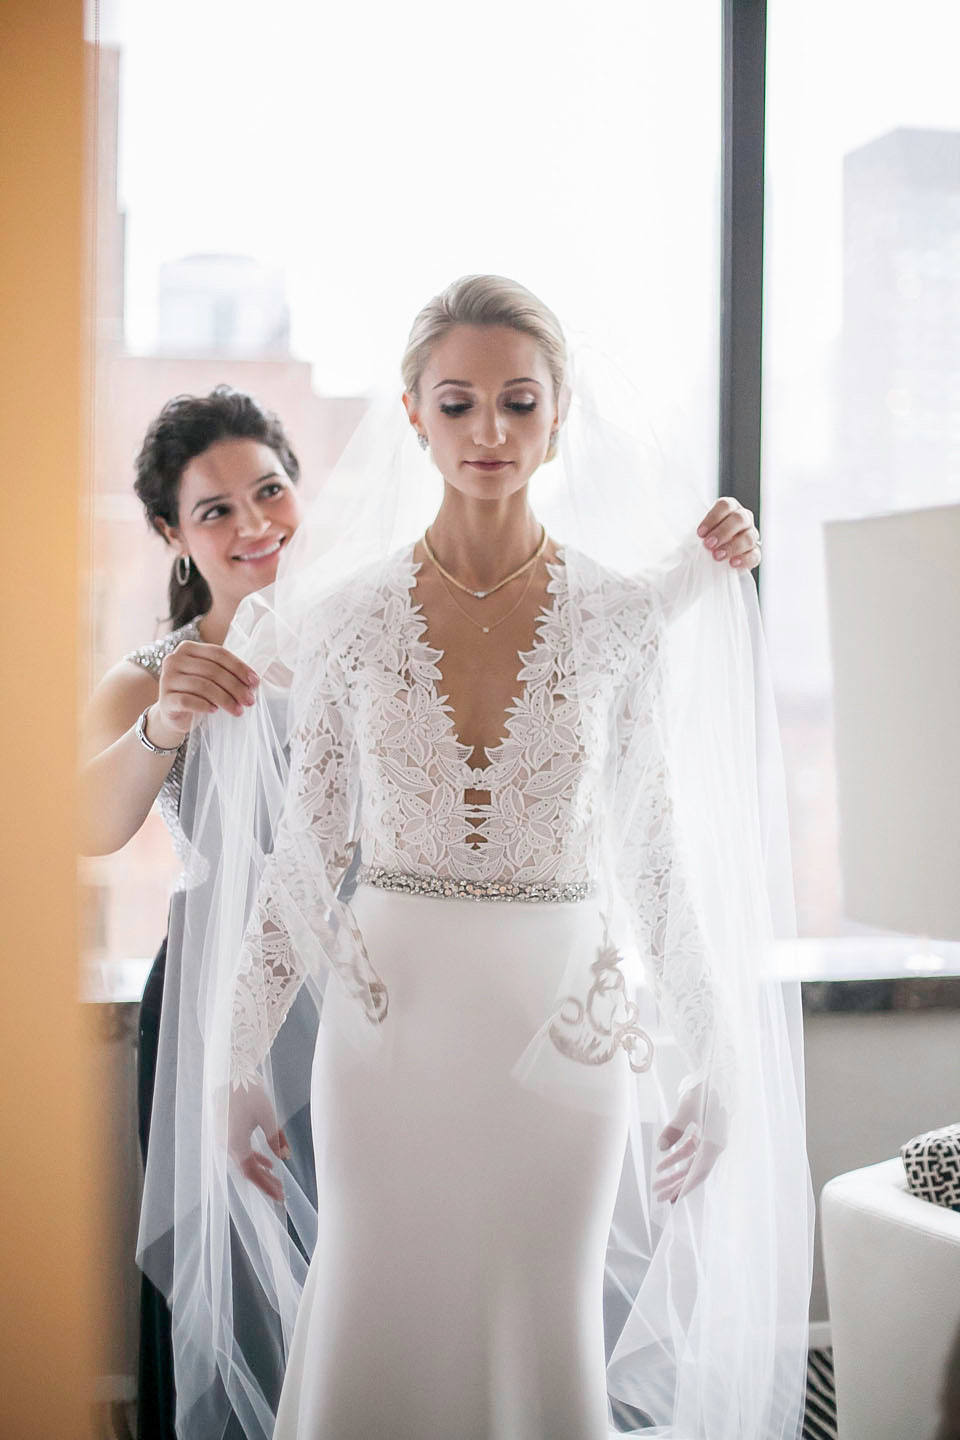 Tara Keely And Monique Lhuillier For An Art Deco Glamour